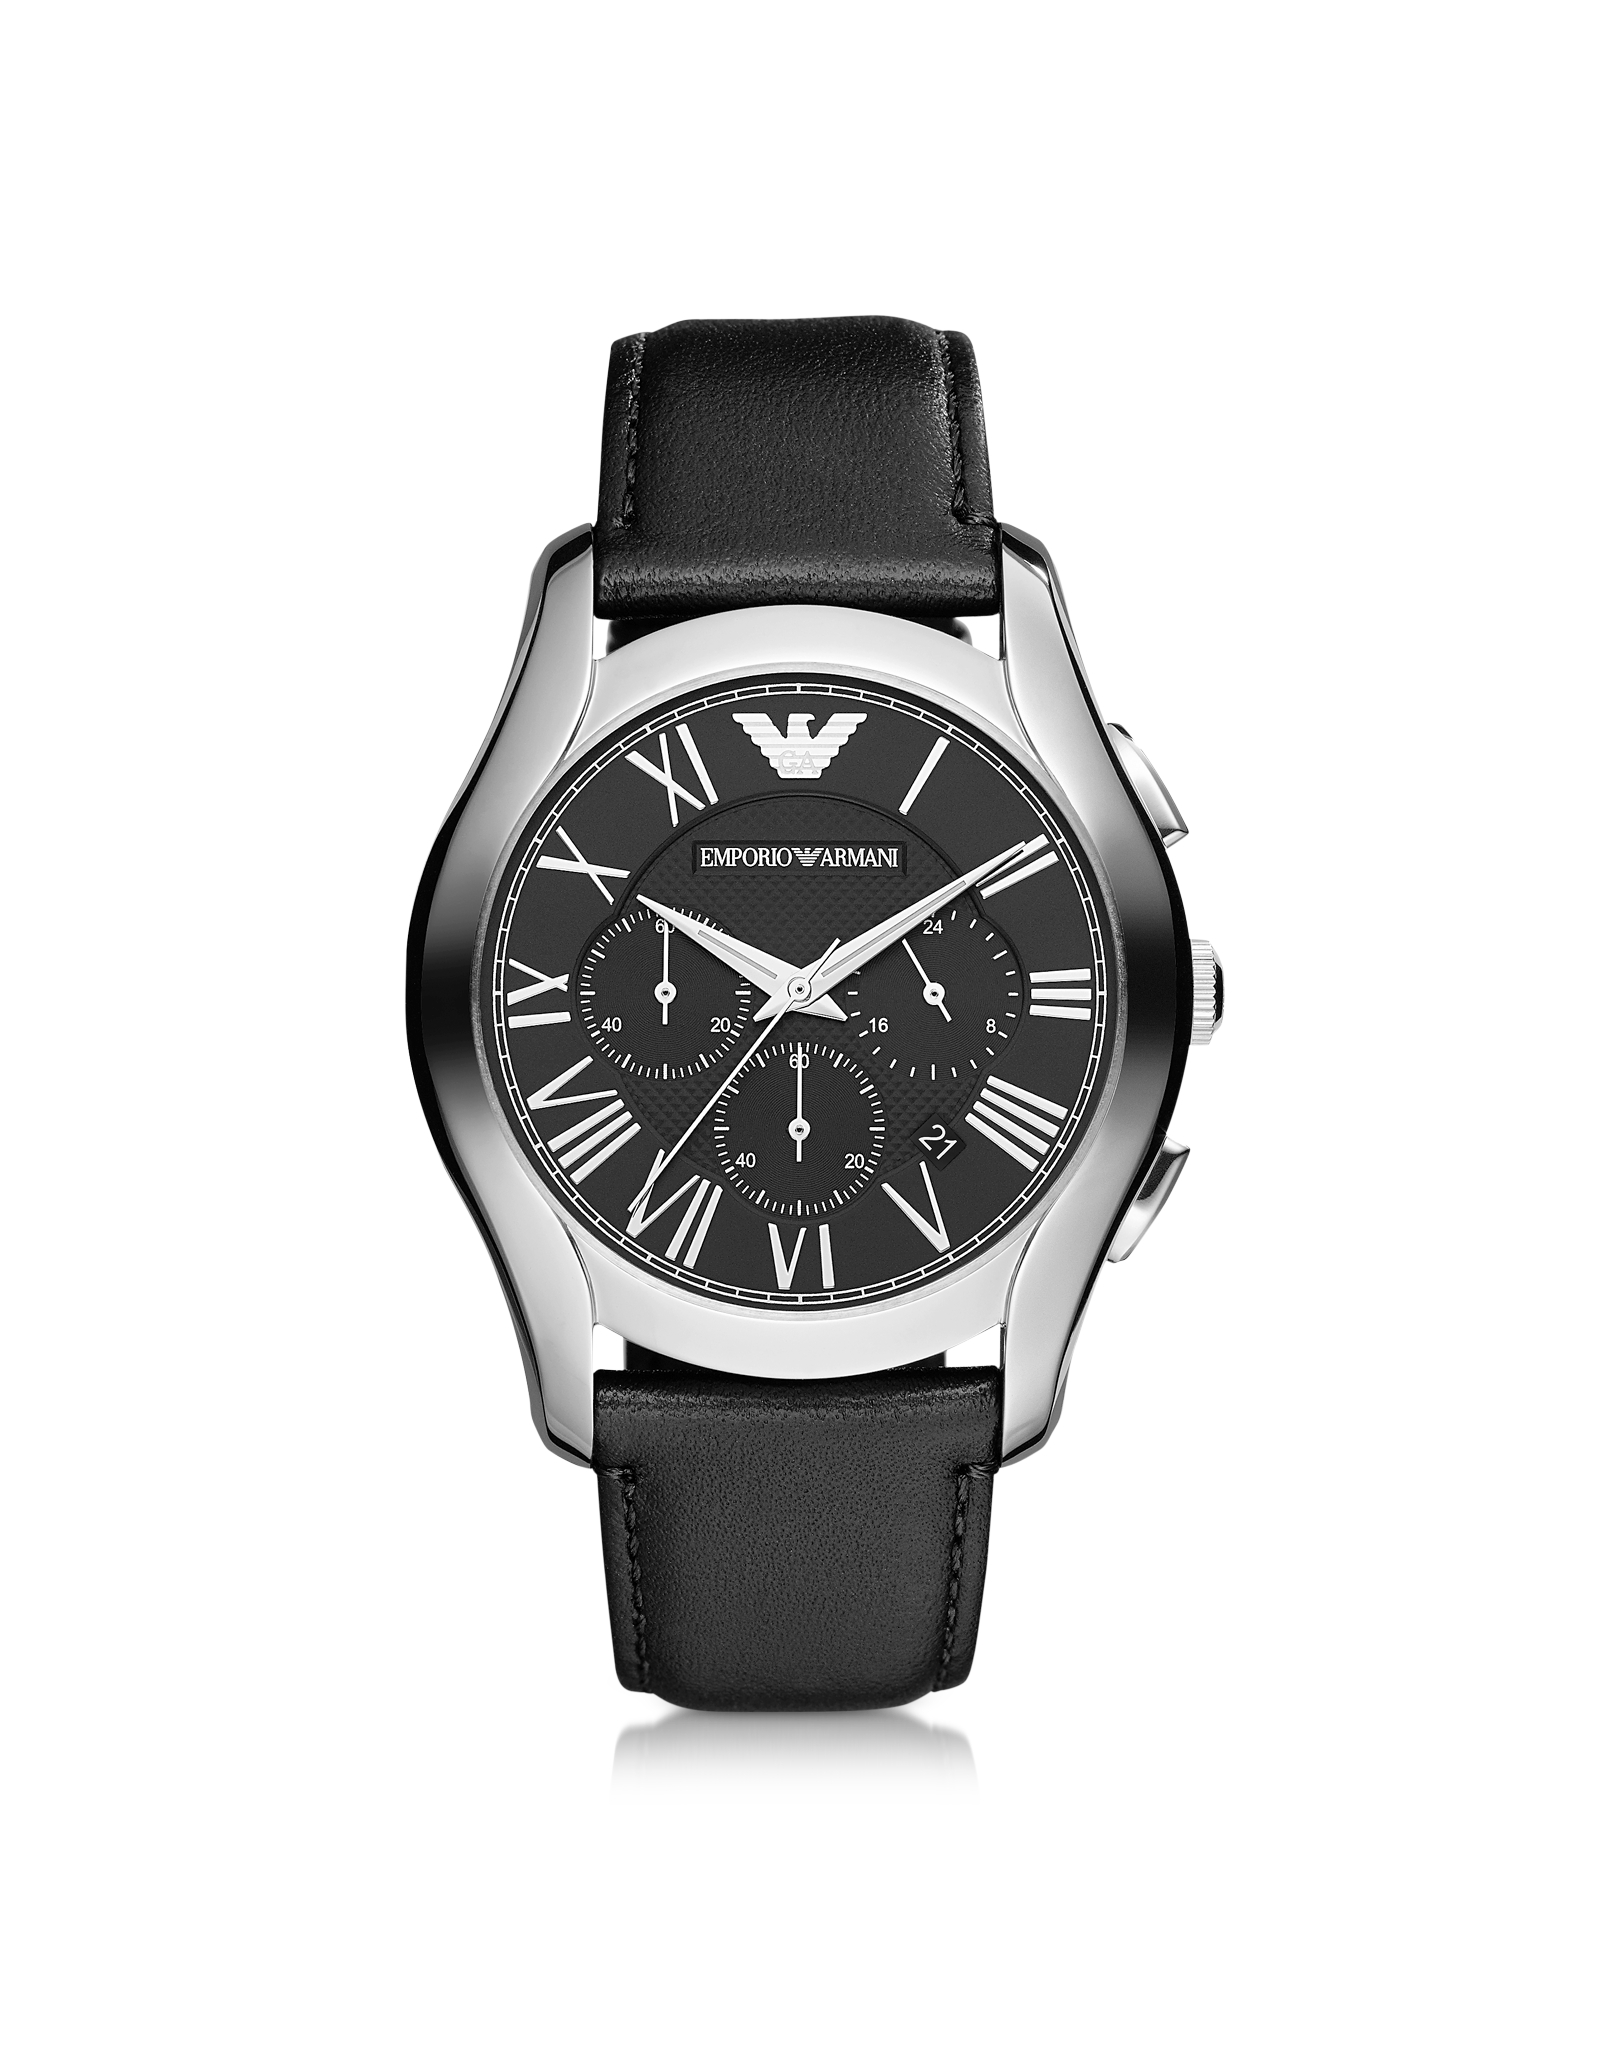 lyst emporio armani valente black leather strap chronograph watchmen 39 s watch in black for men